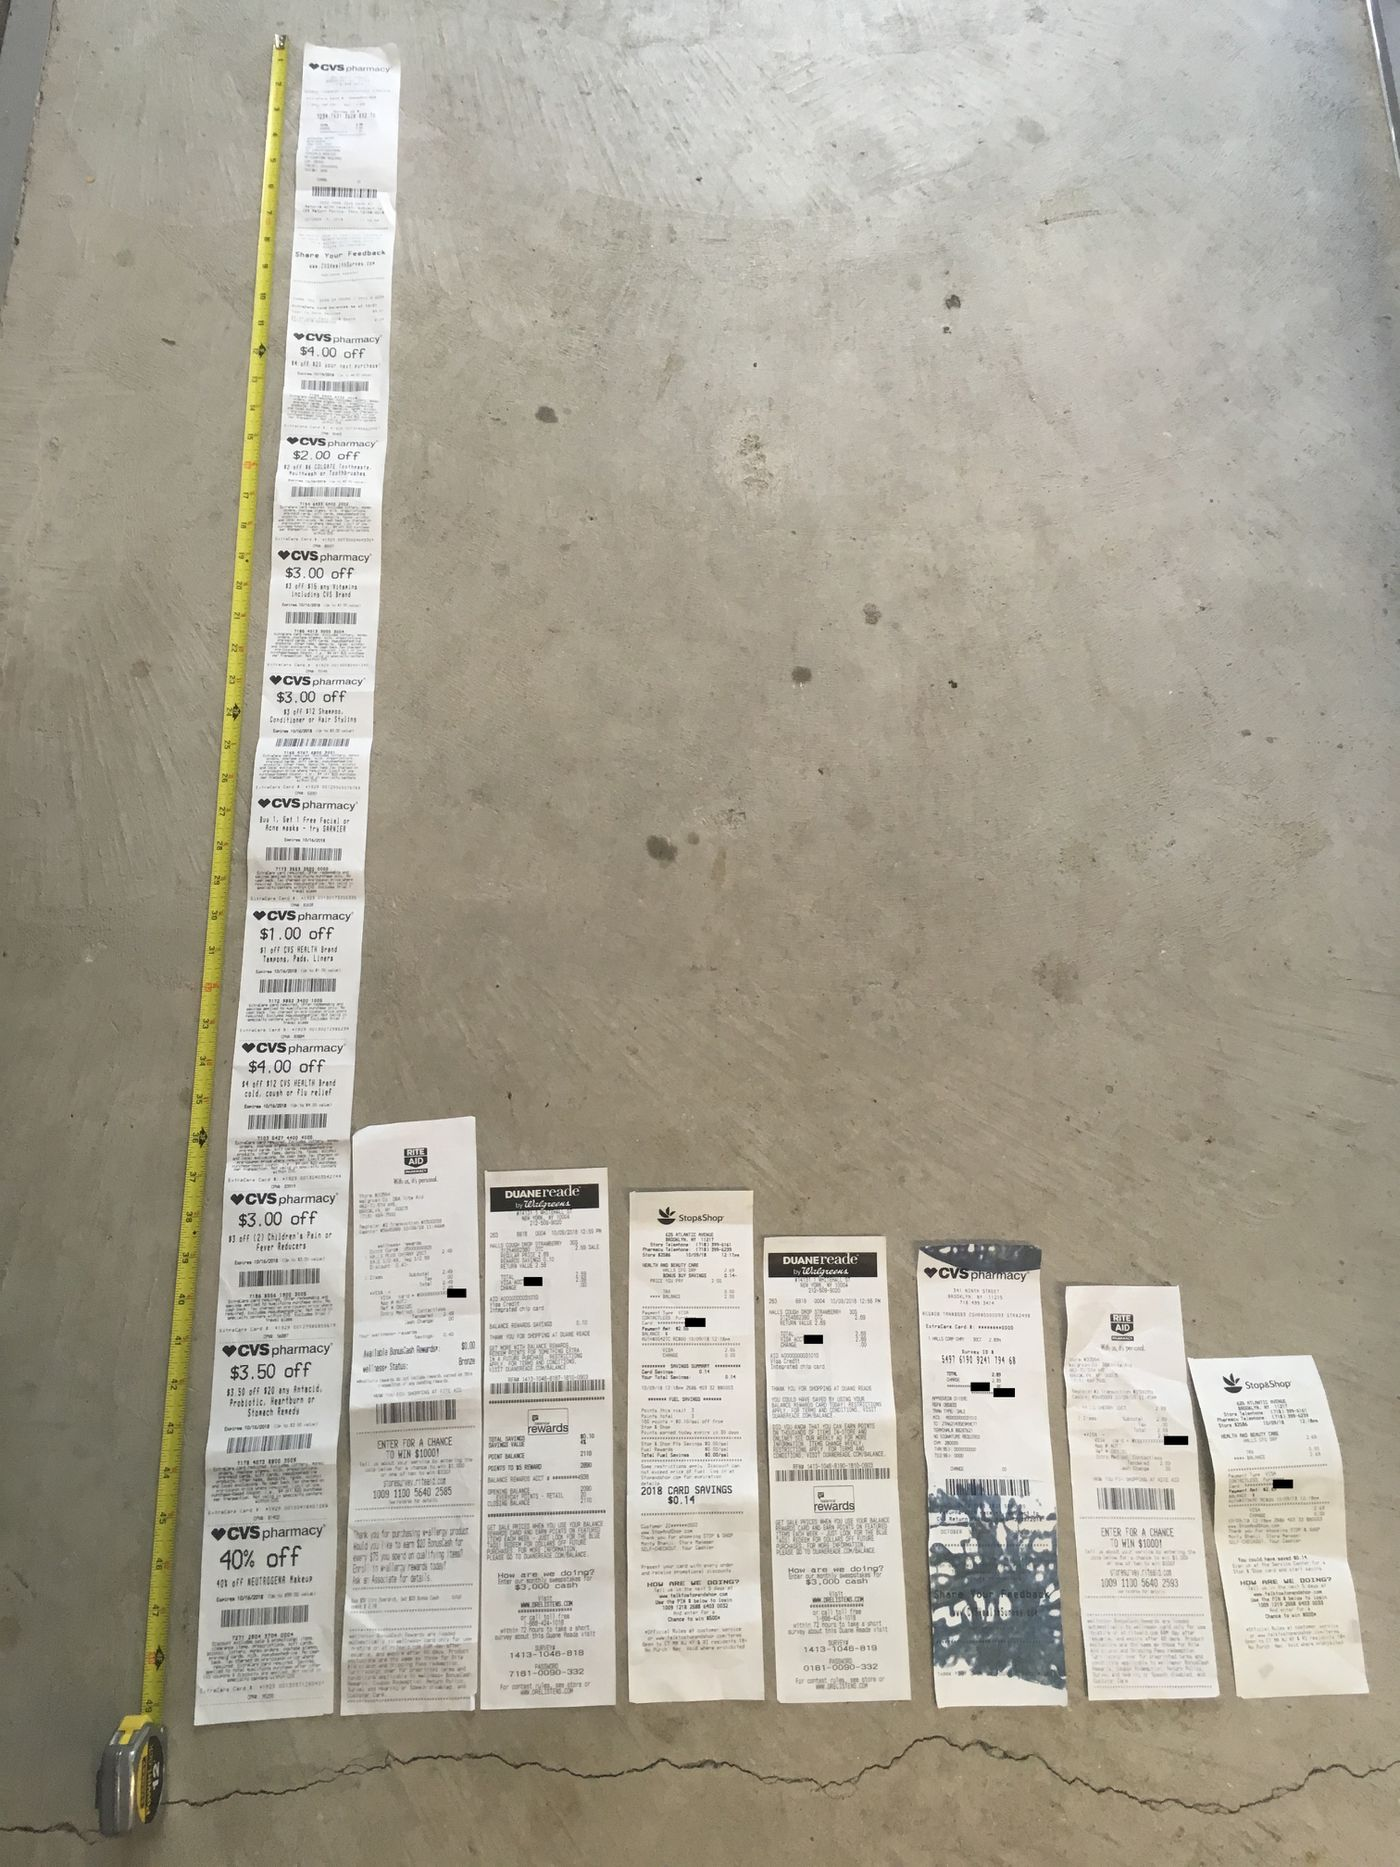 Why are CVS receipts so long? An investigation  - Vox